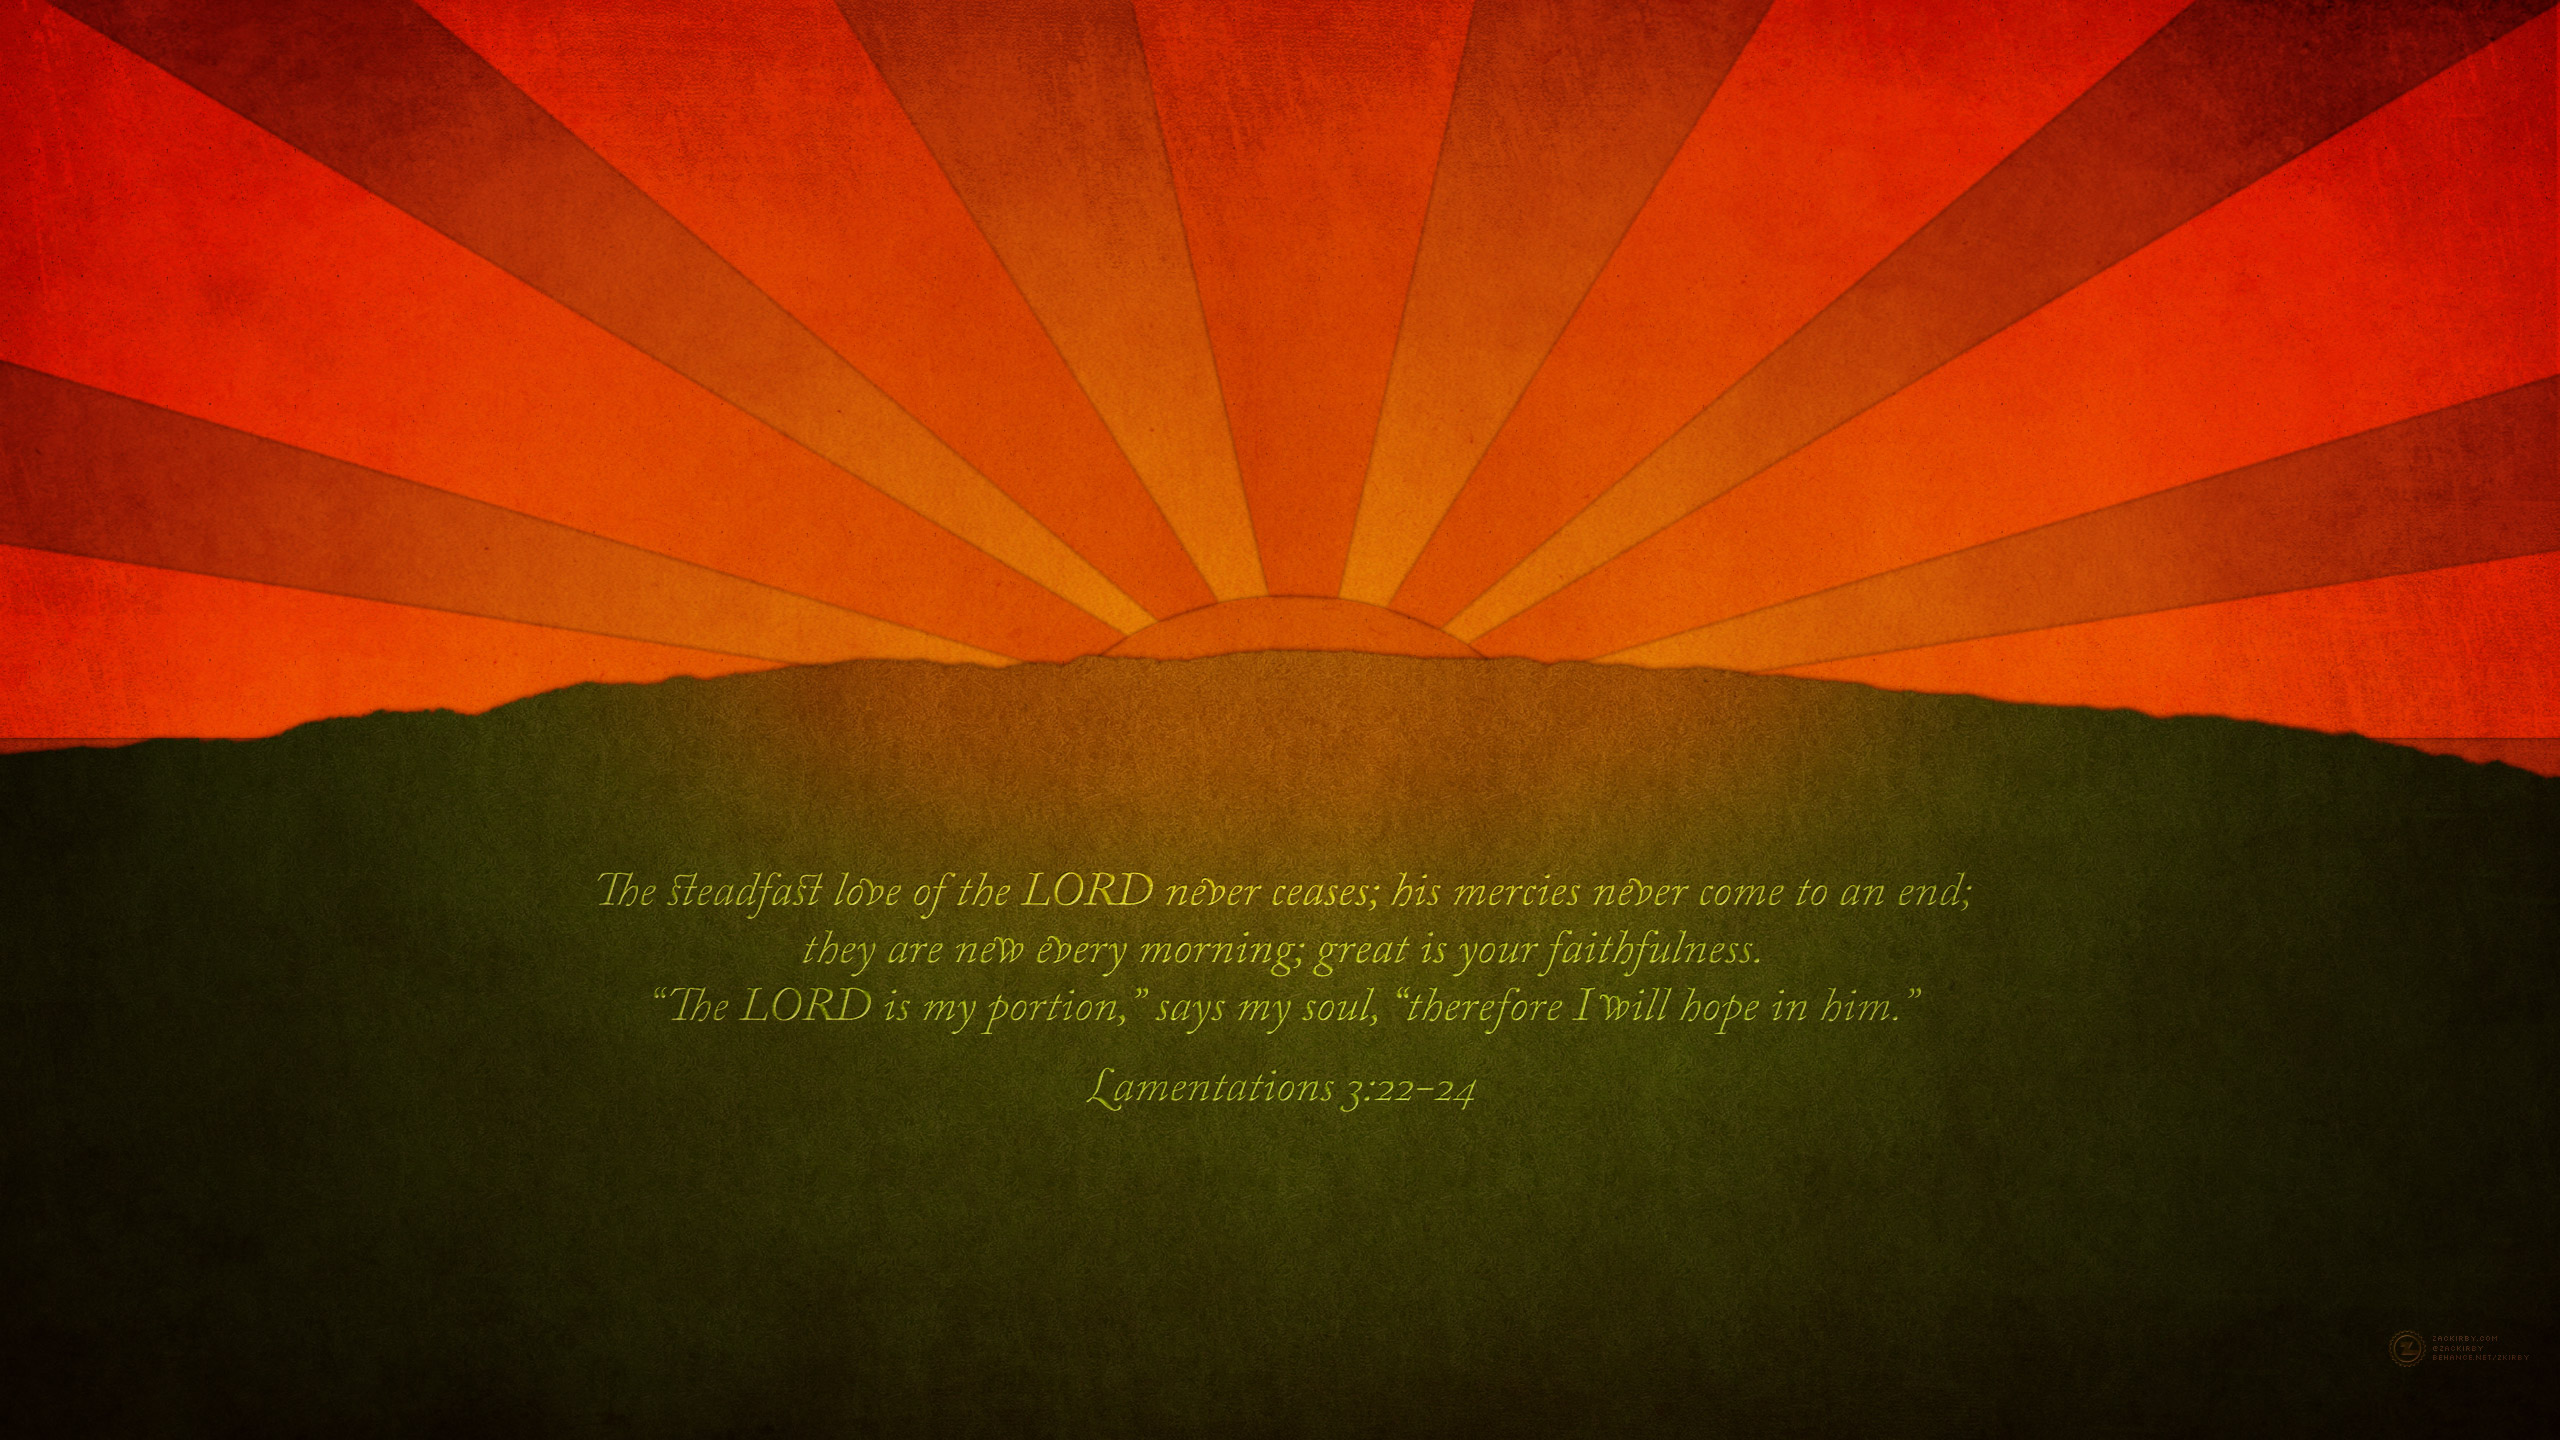 S3 Amazonaws http://pinterest.com/challies/bible-wallpapers/